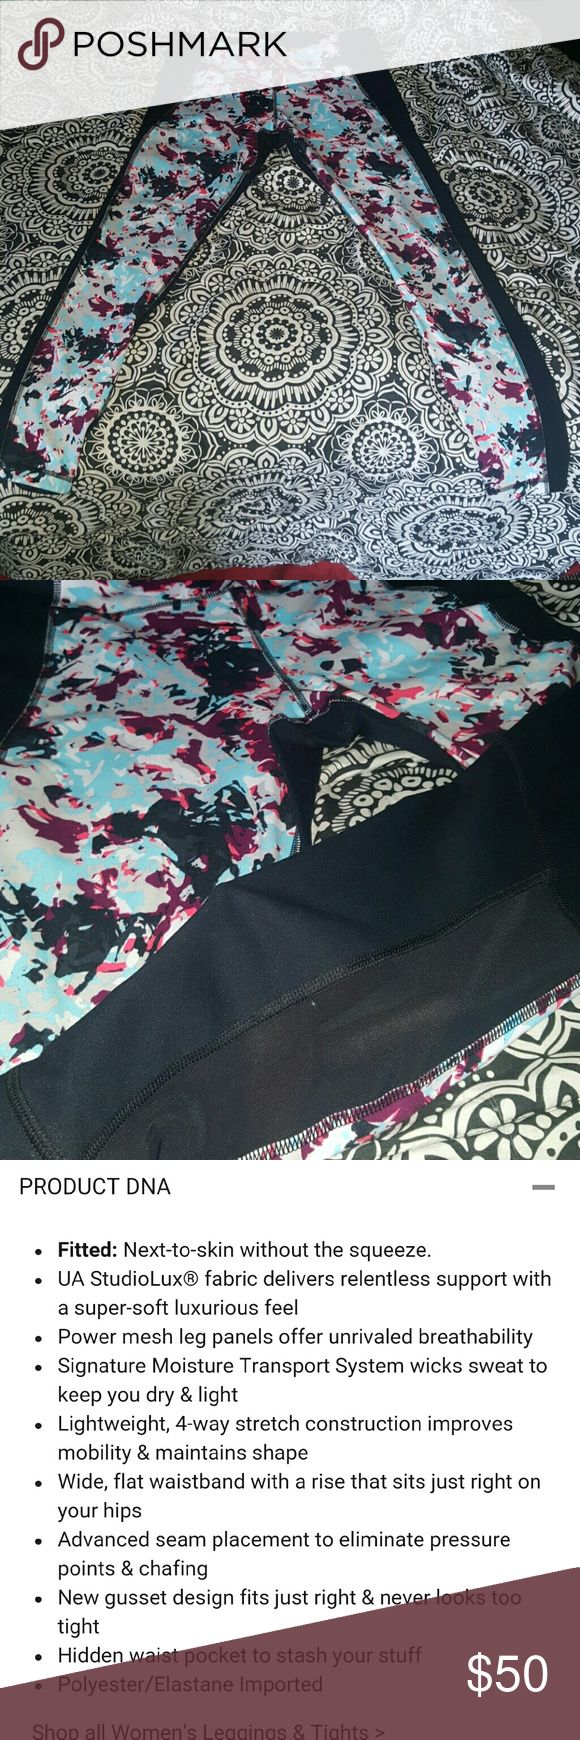 New Under Armour Leggings New, ladies size large heat-gear mirror printed studio leggings. Very nice print & colors. Back calf area has a see through area with sheer type of fabric. 3rd pic has detailed info from website. The back side is all plain black. Any questions feel free to ask. They are sold out online. I paid 75$ for these not long ago. They are just to big for me so I don't have any use for them, thats all. They're brand new, my loss Under Armour Pants Leggings